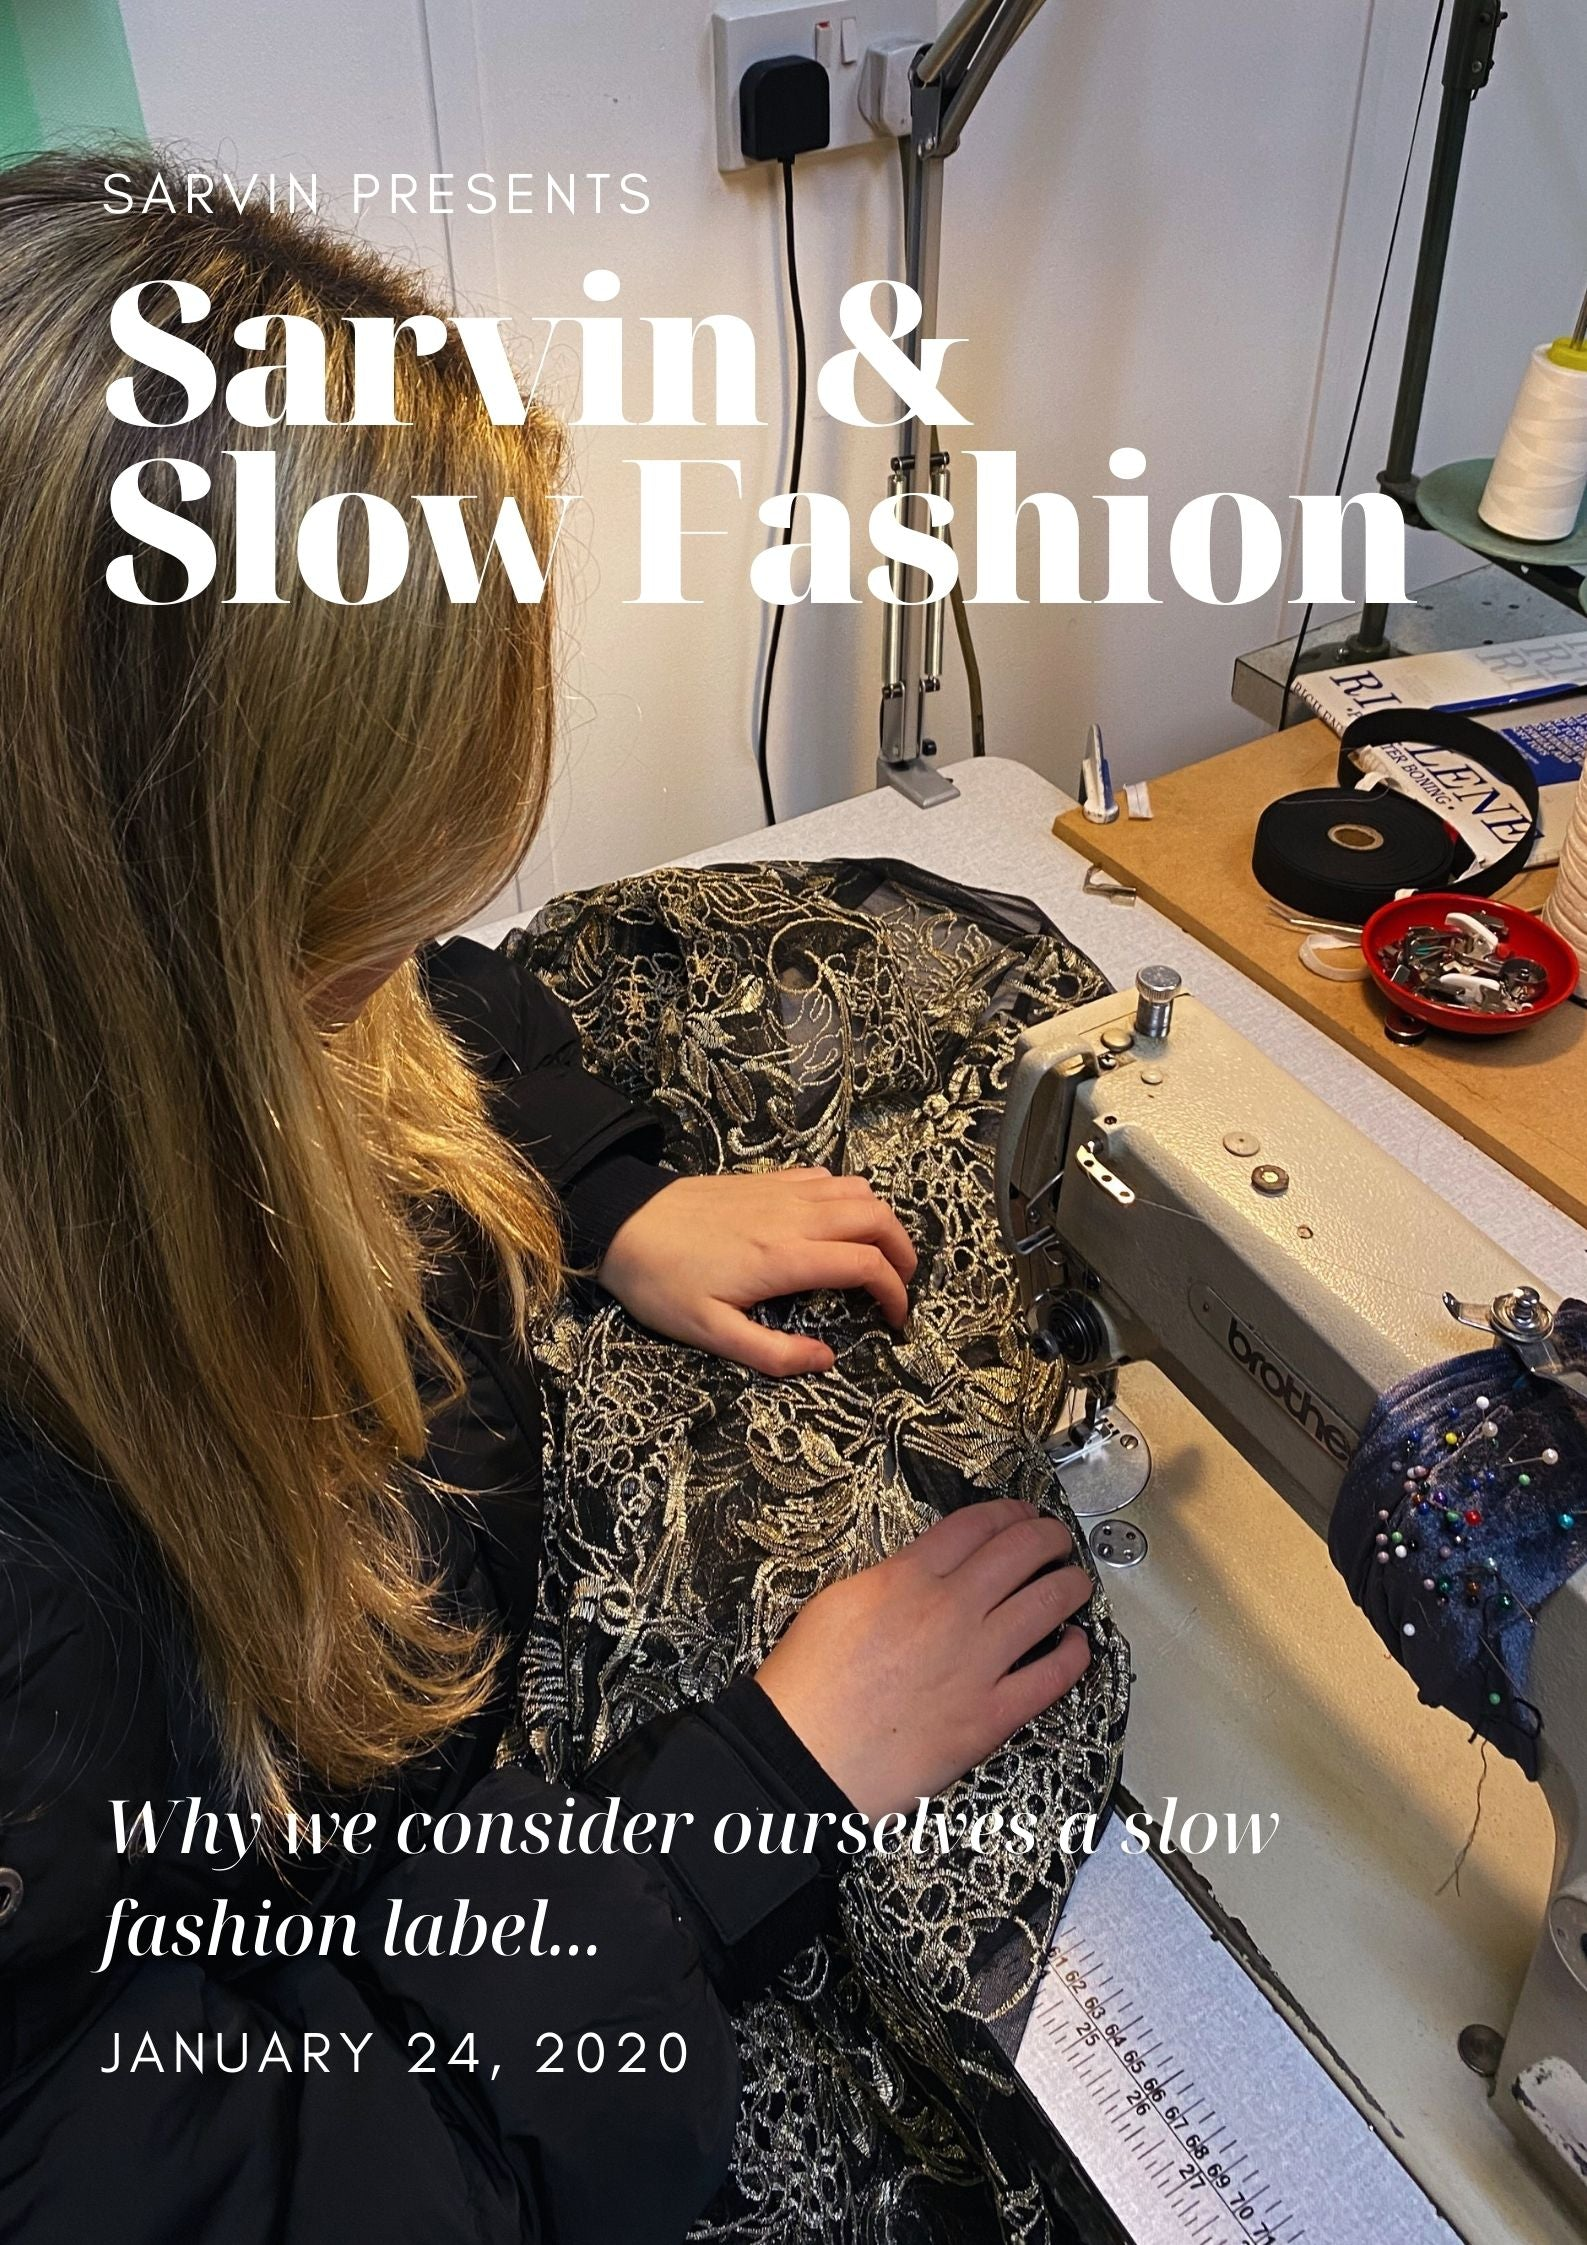 Sarvin & Slow Fashion